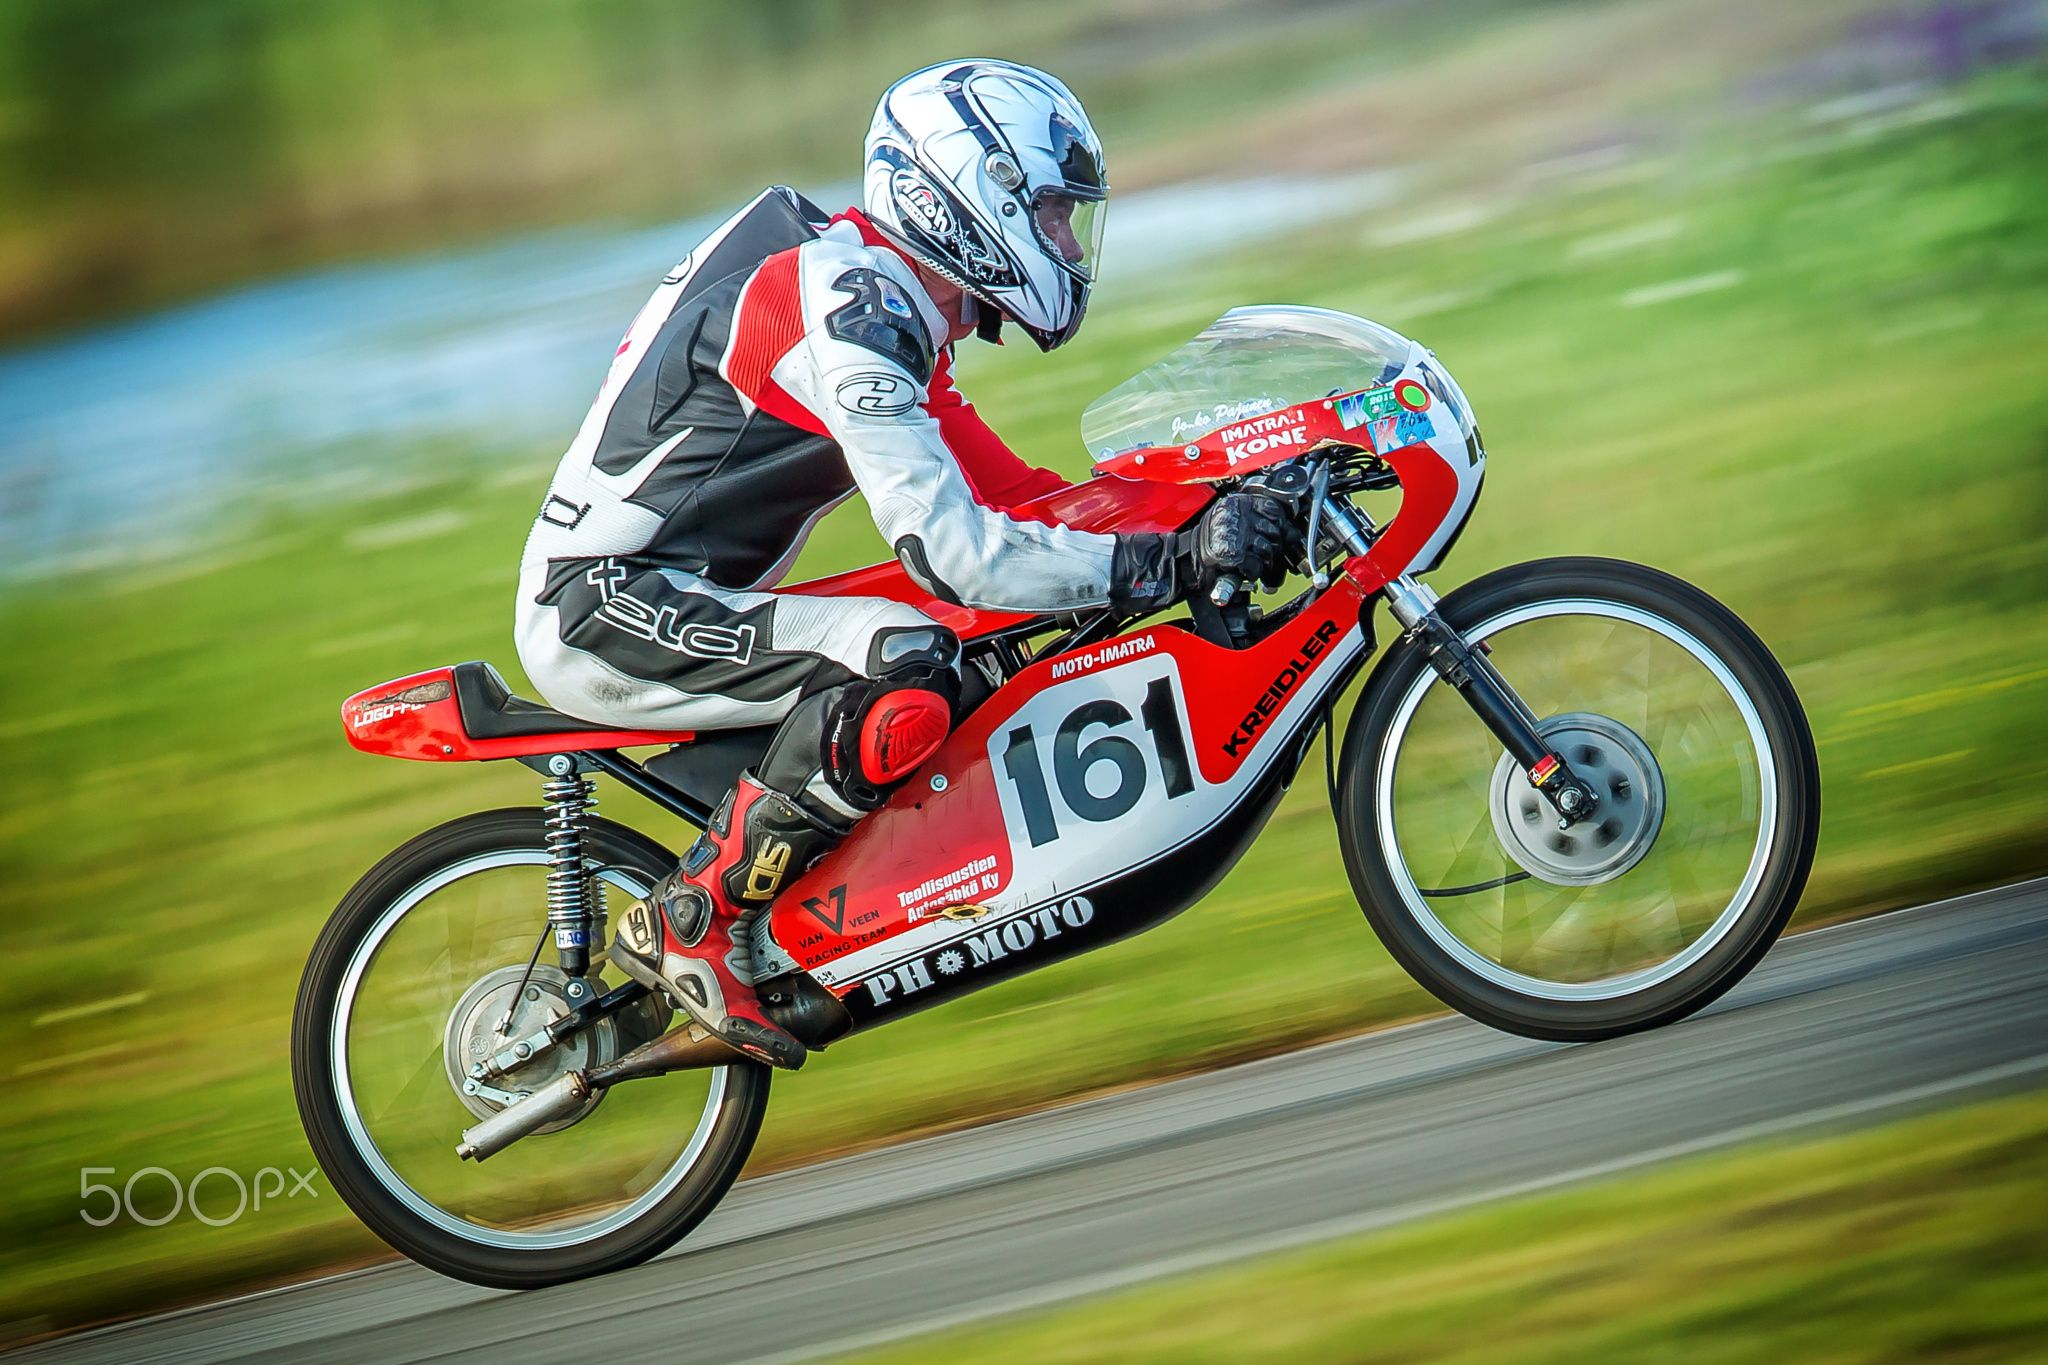 Classic Moto Racing An Image From Classic Motorcycle Race